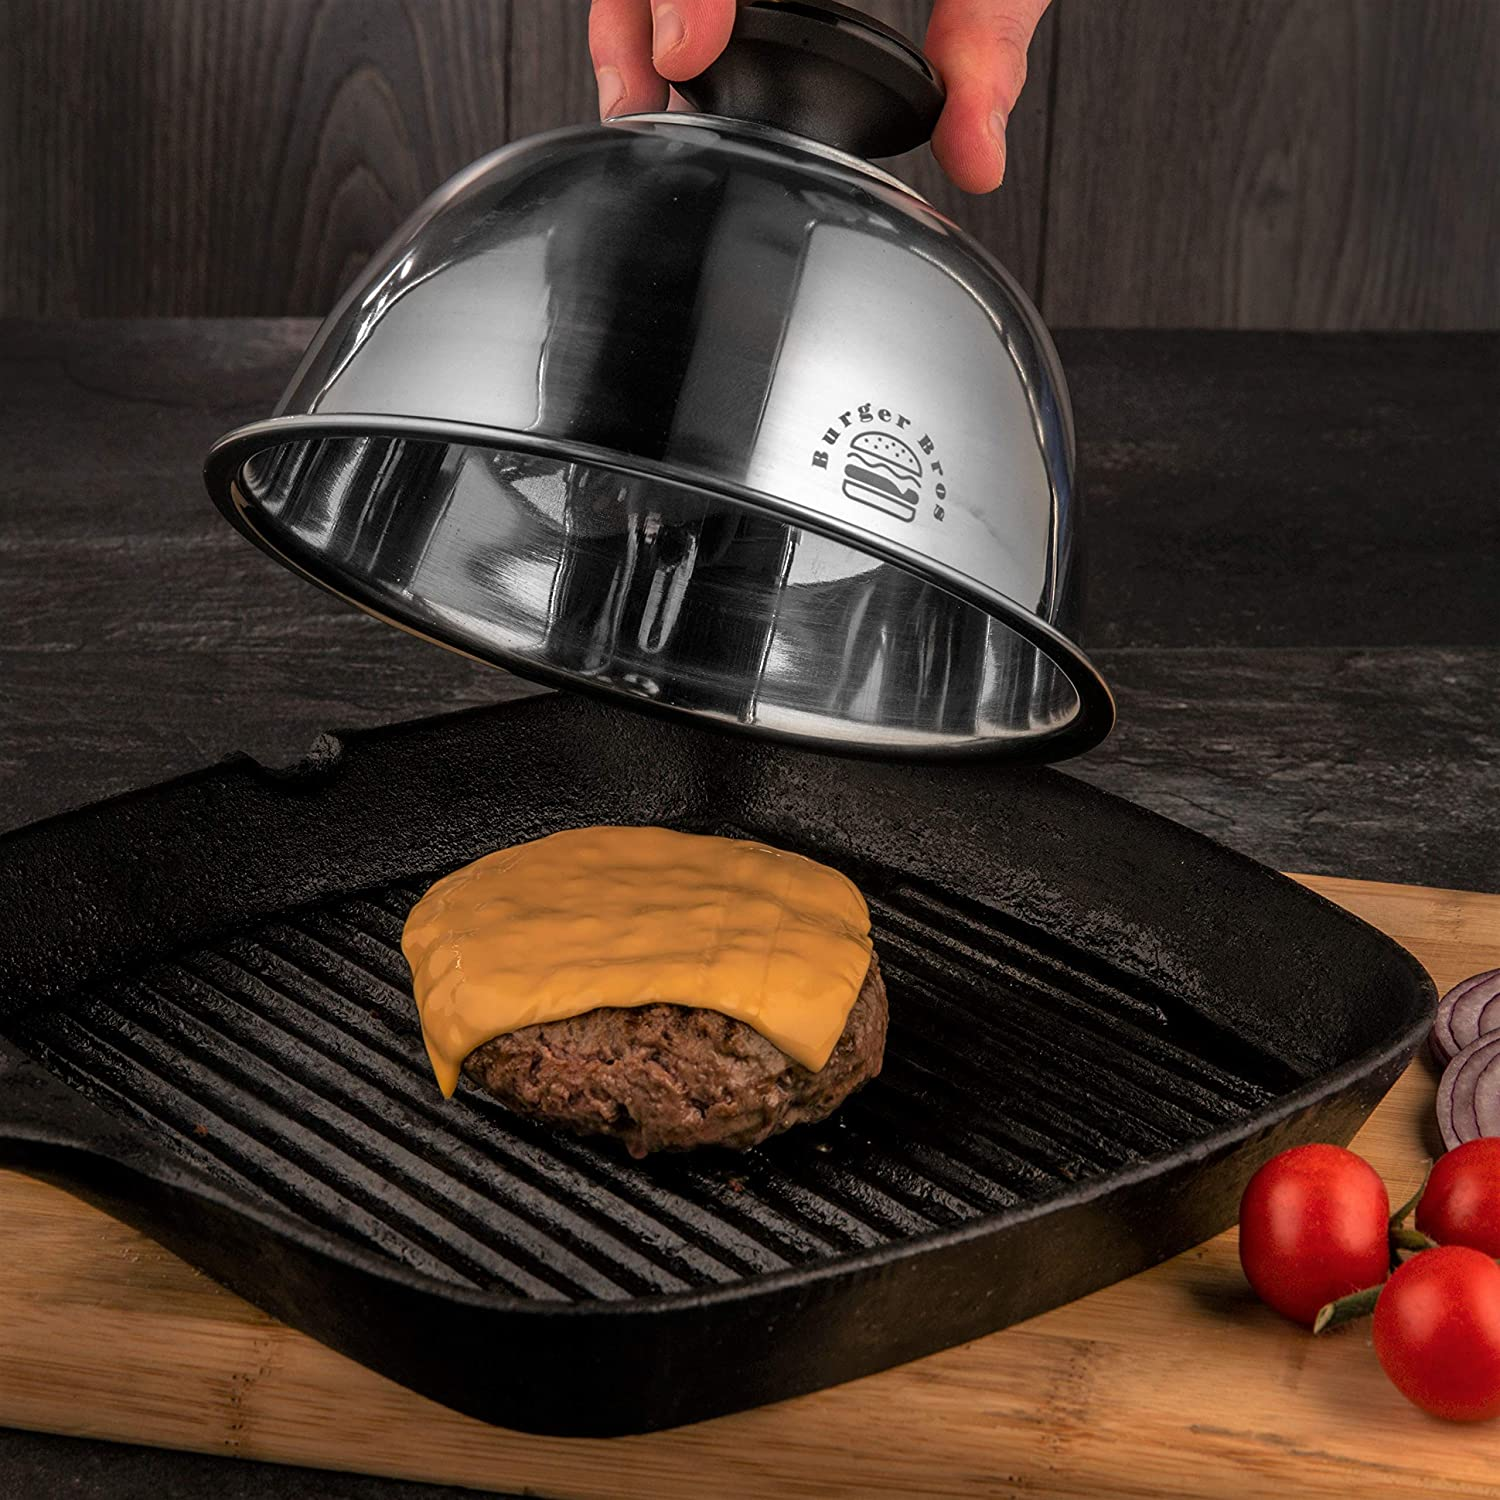 Great for Skillet Never Burn Your Hands Again 6.5 Basting Cover//Cheese Melting Dome with Heat Resistant Handle by Burger Bros Flat Top Grill /& Griddle